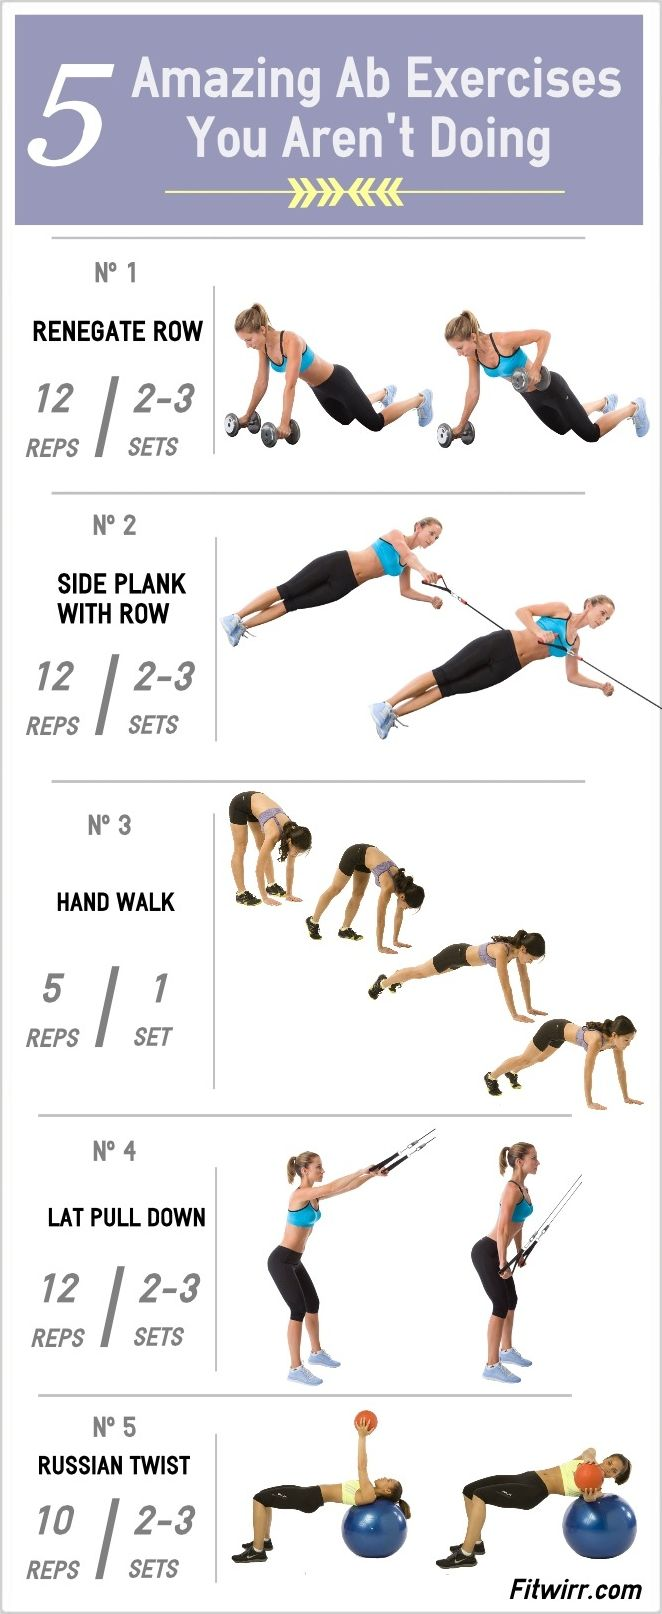 The Happy Healthy Lifestyle Workout Muscle Fitness